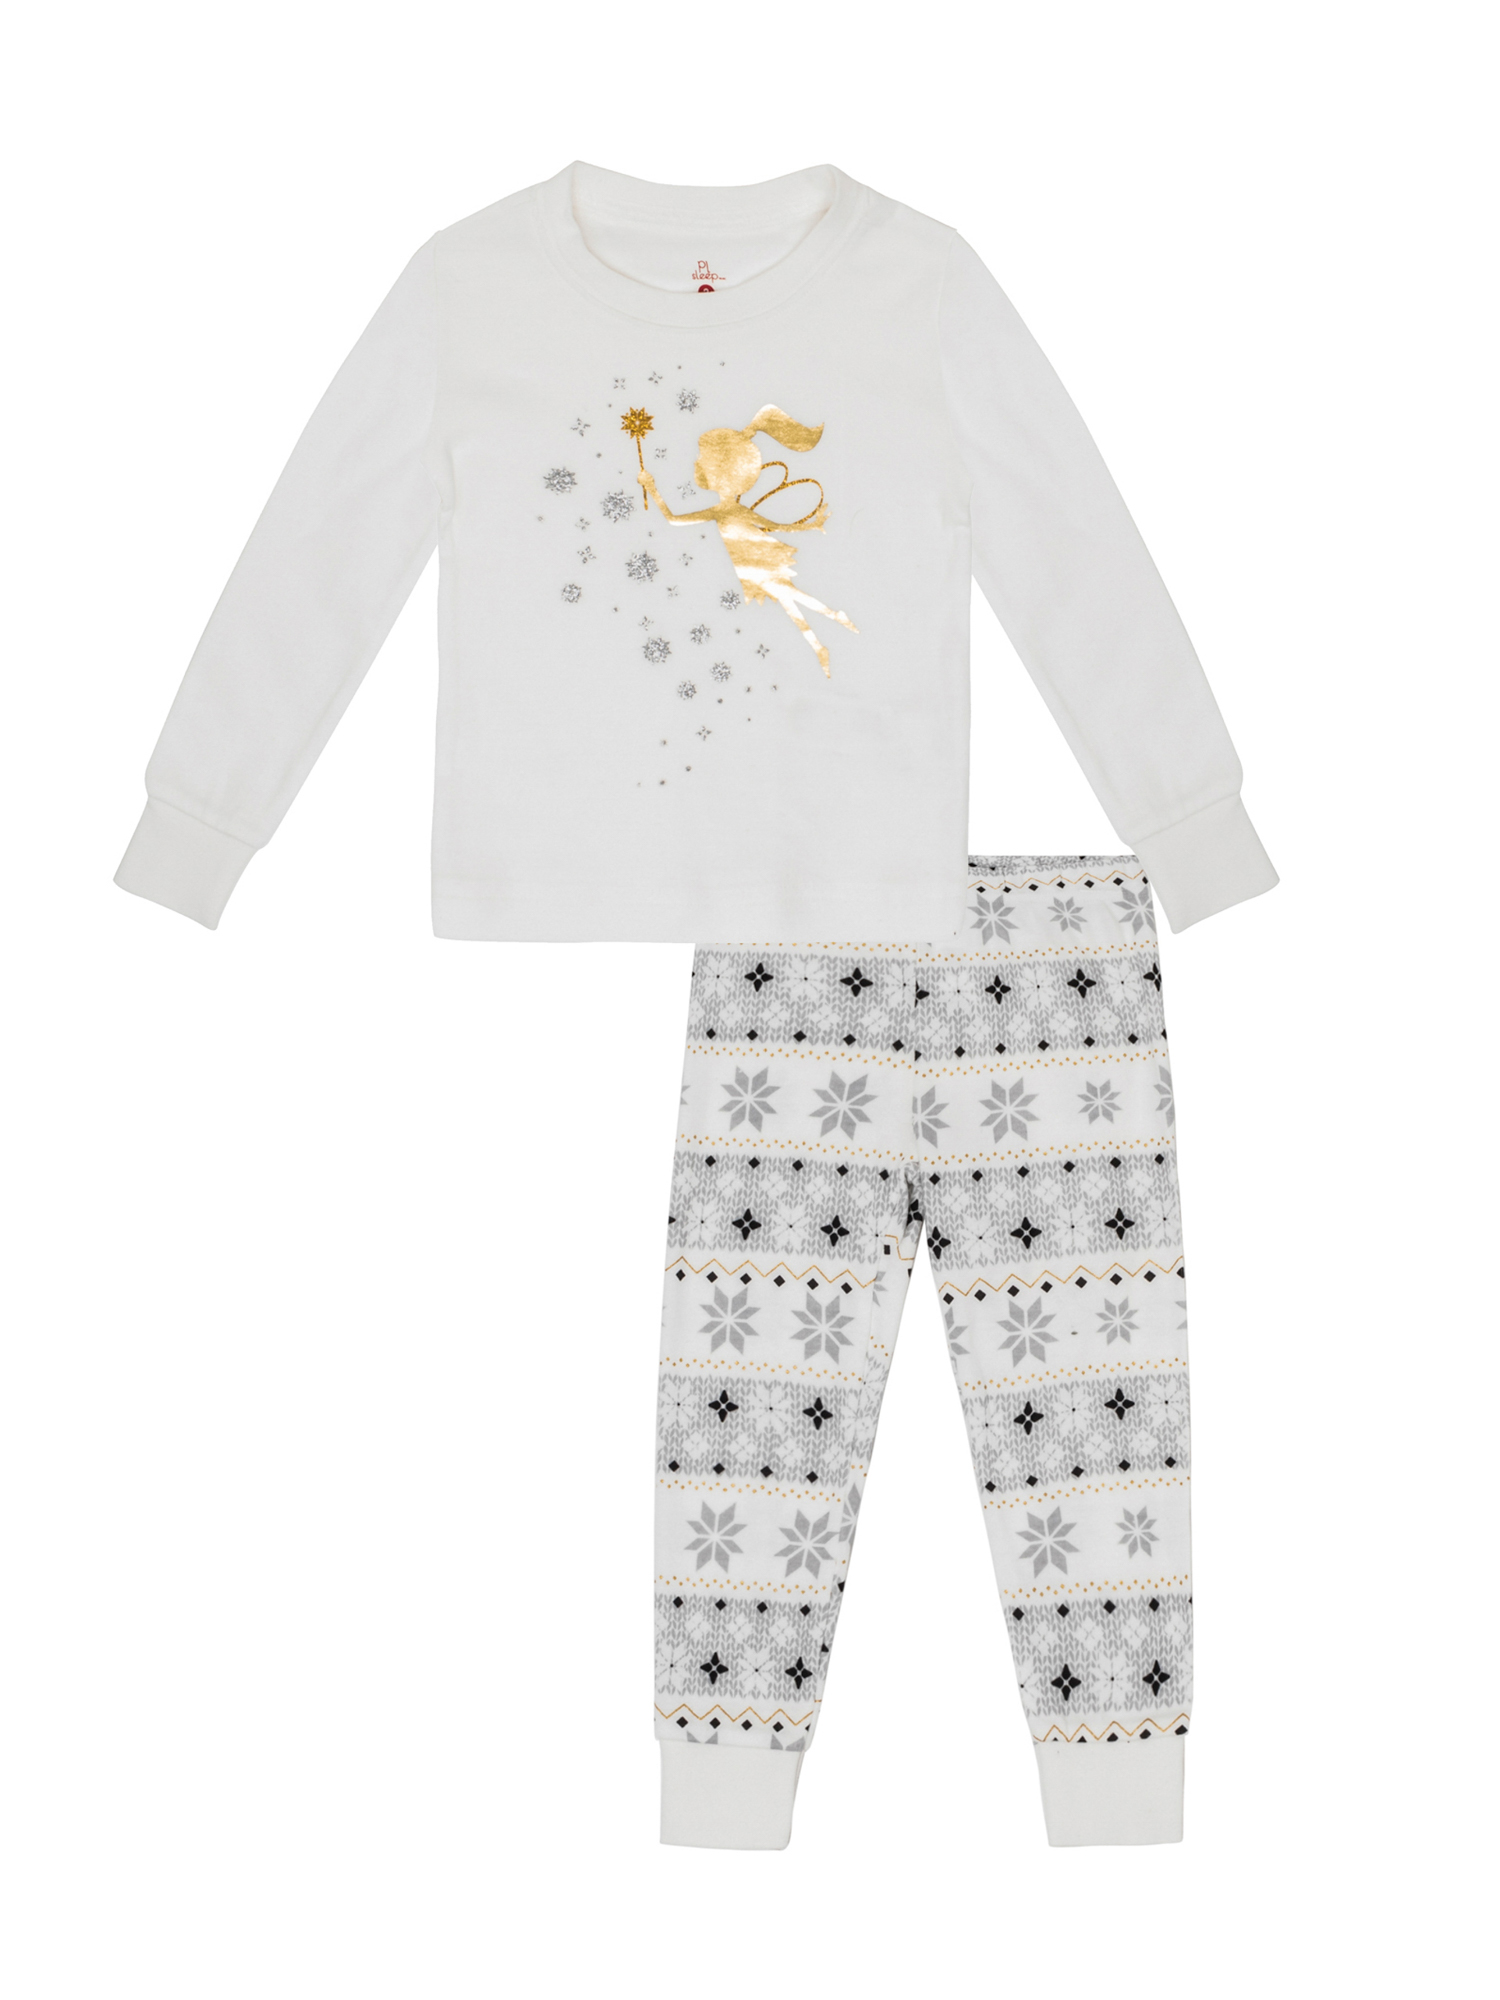 New Baby Guitar Pajamas for Boy or Girl by Petit Lem